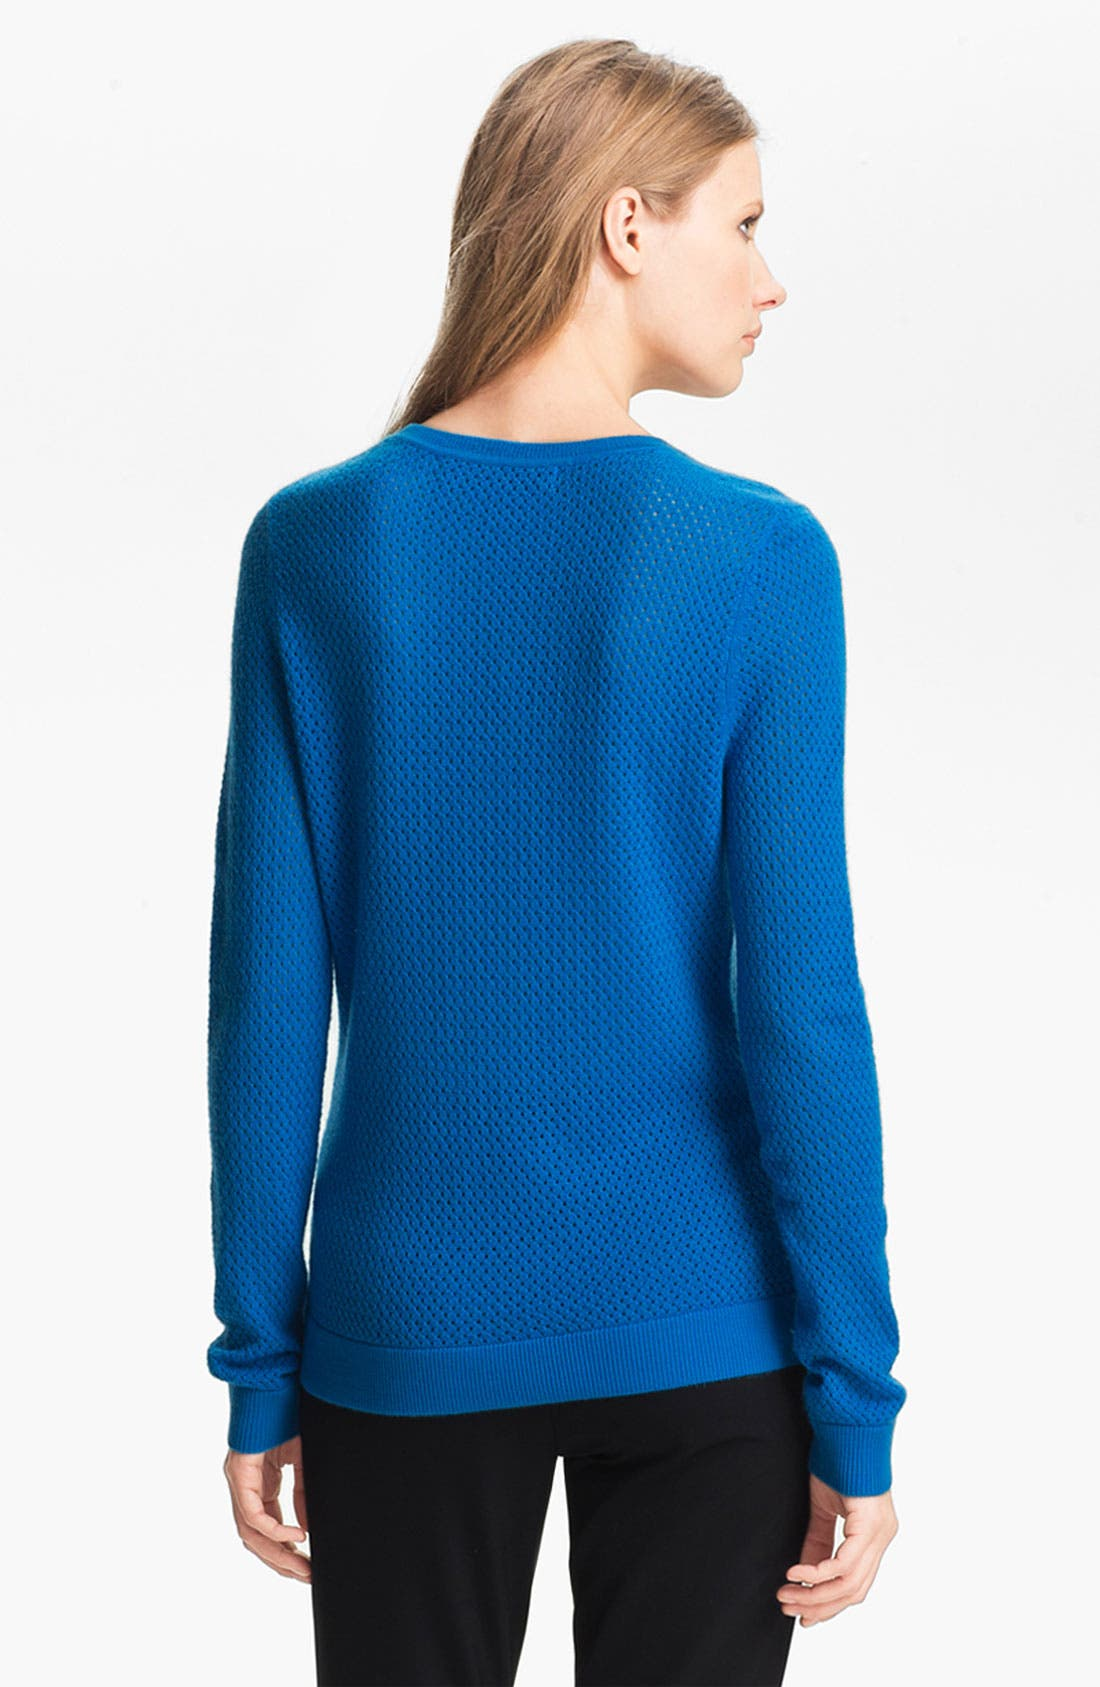 Alternate Image 3  - Miss Wu 'Sofie' Stitch Detail Cashmere Sweater (Nordstrom Exclusive)